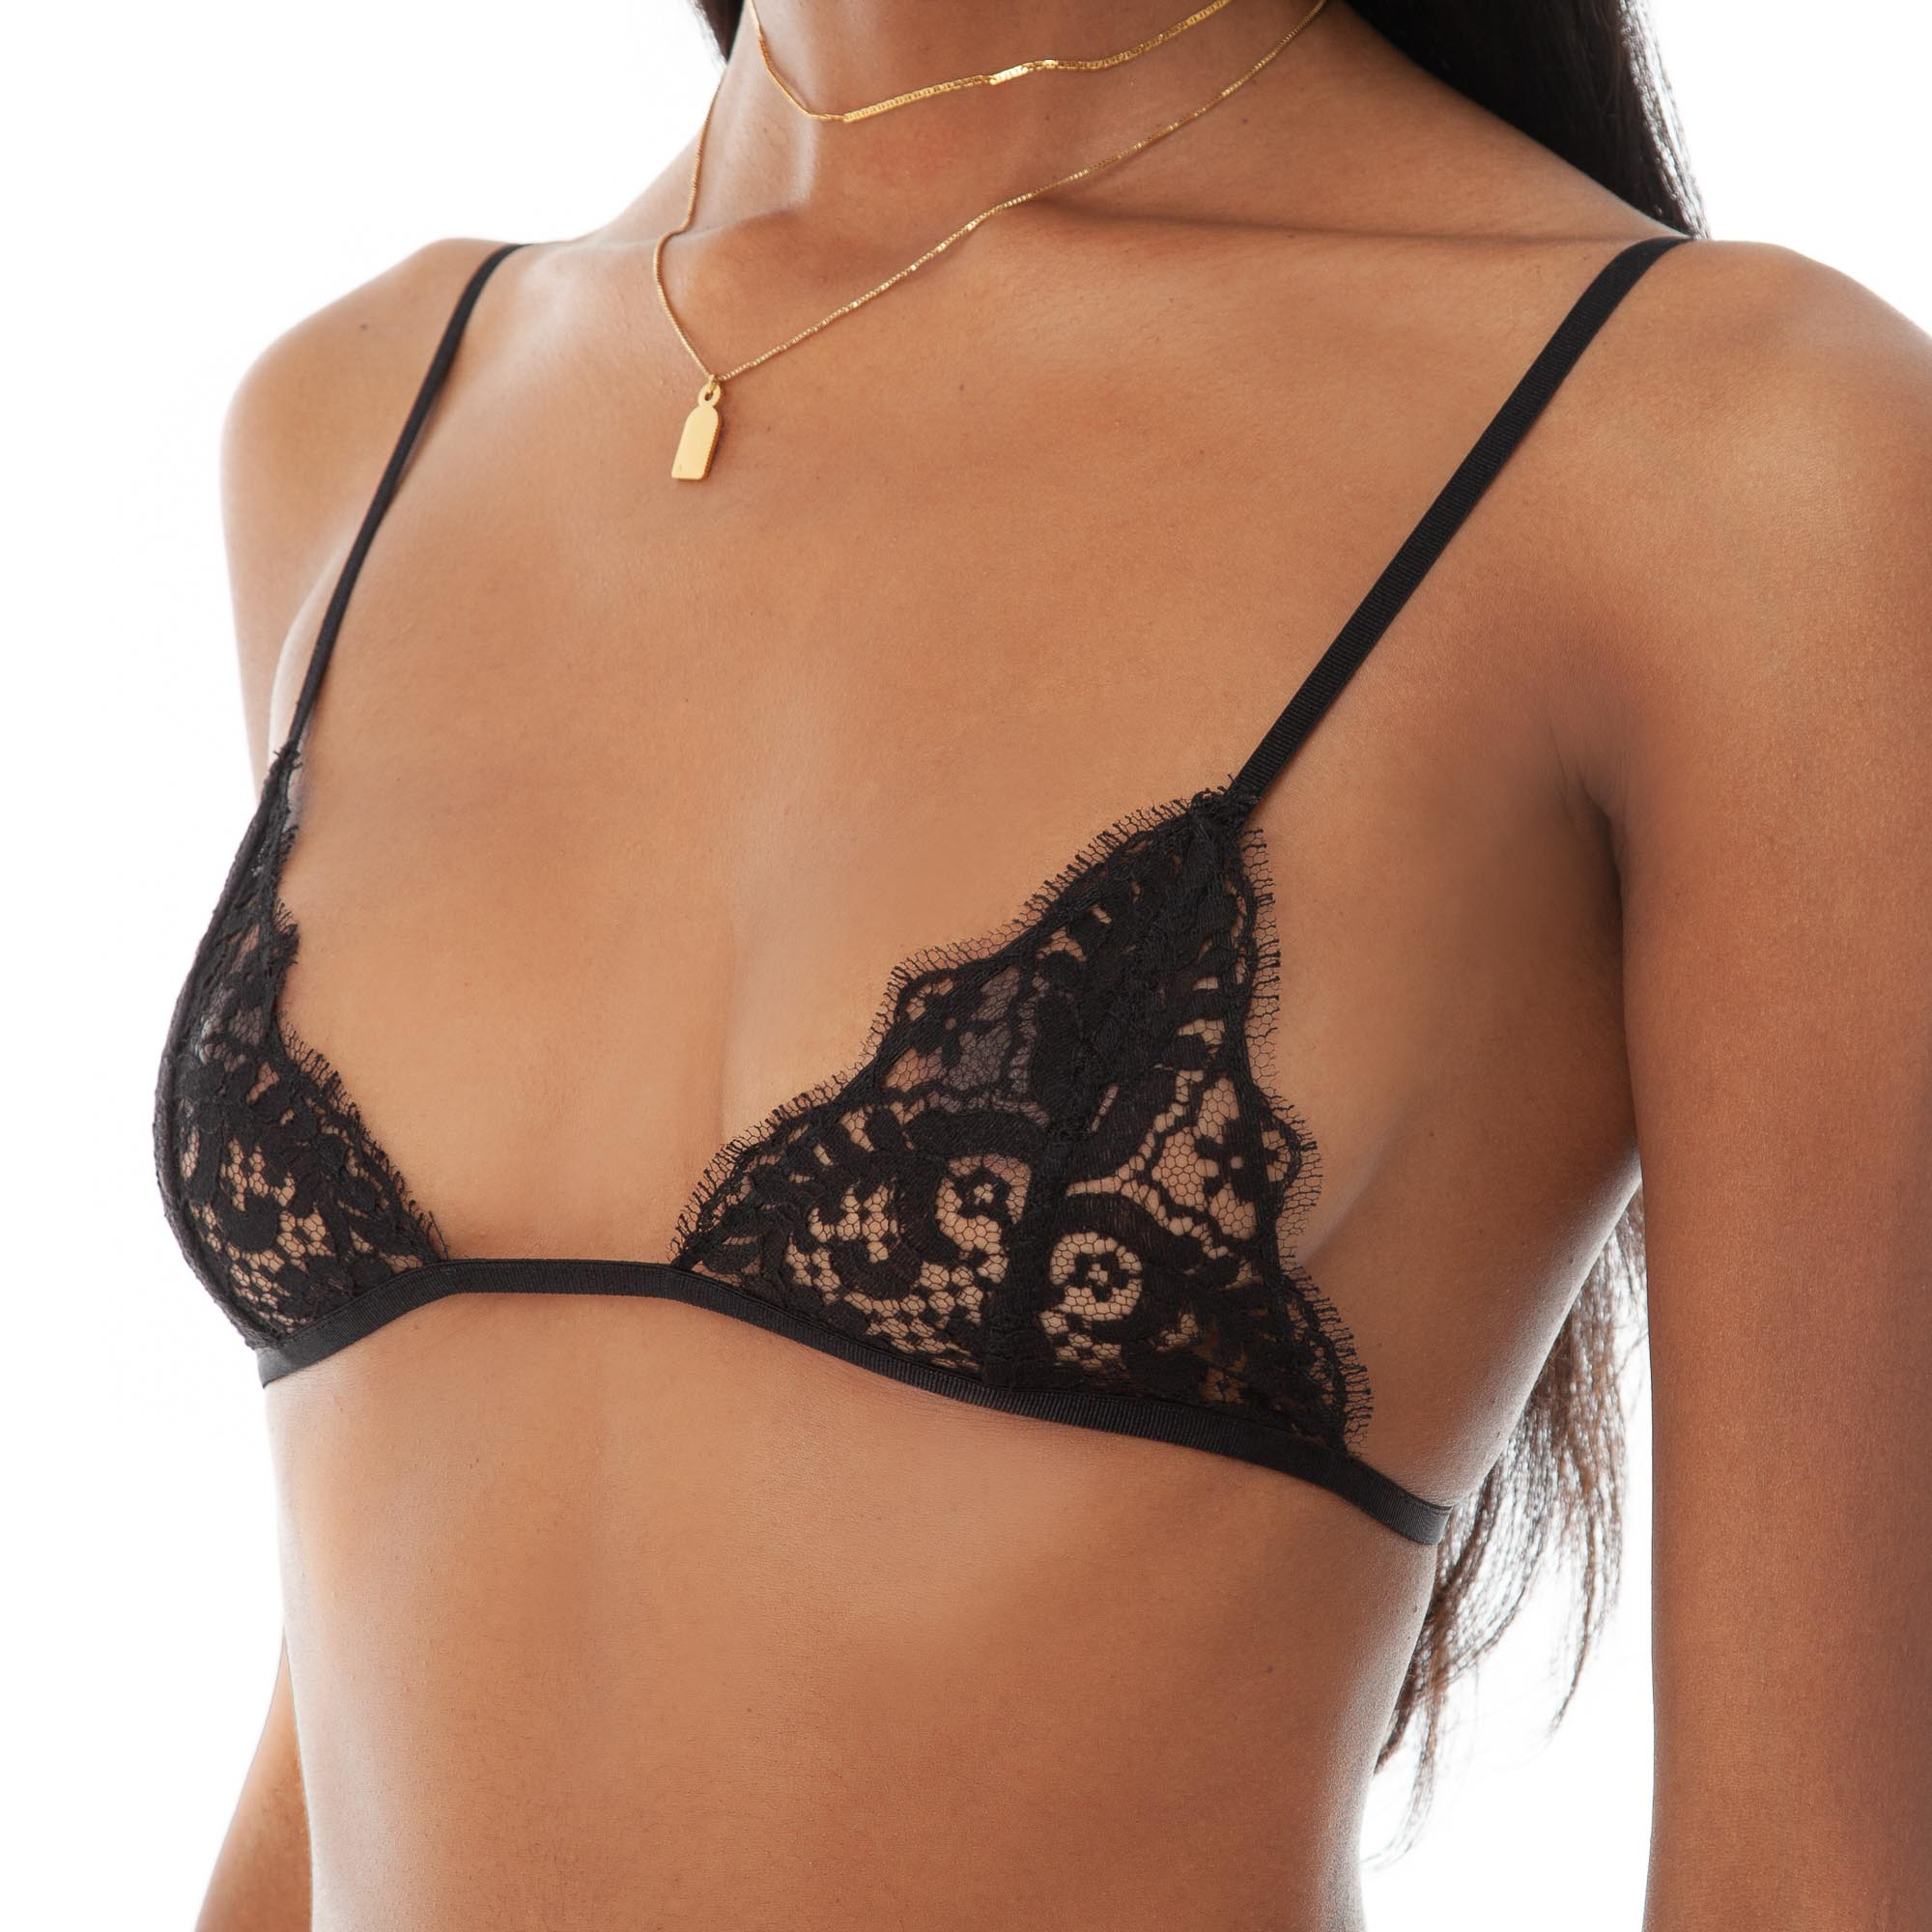 Are You Am I - Sylph Lace Bra **black